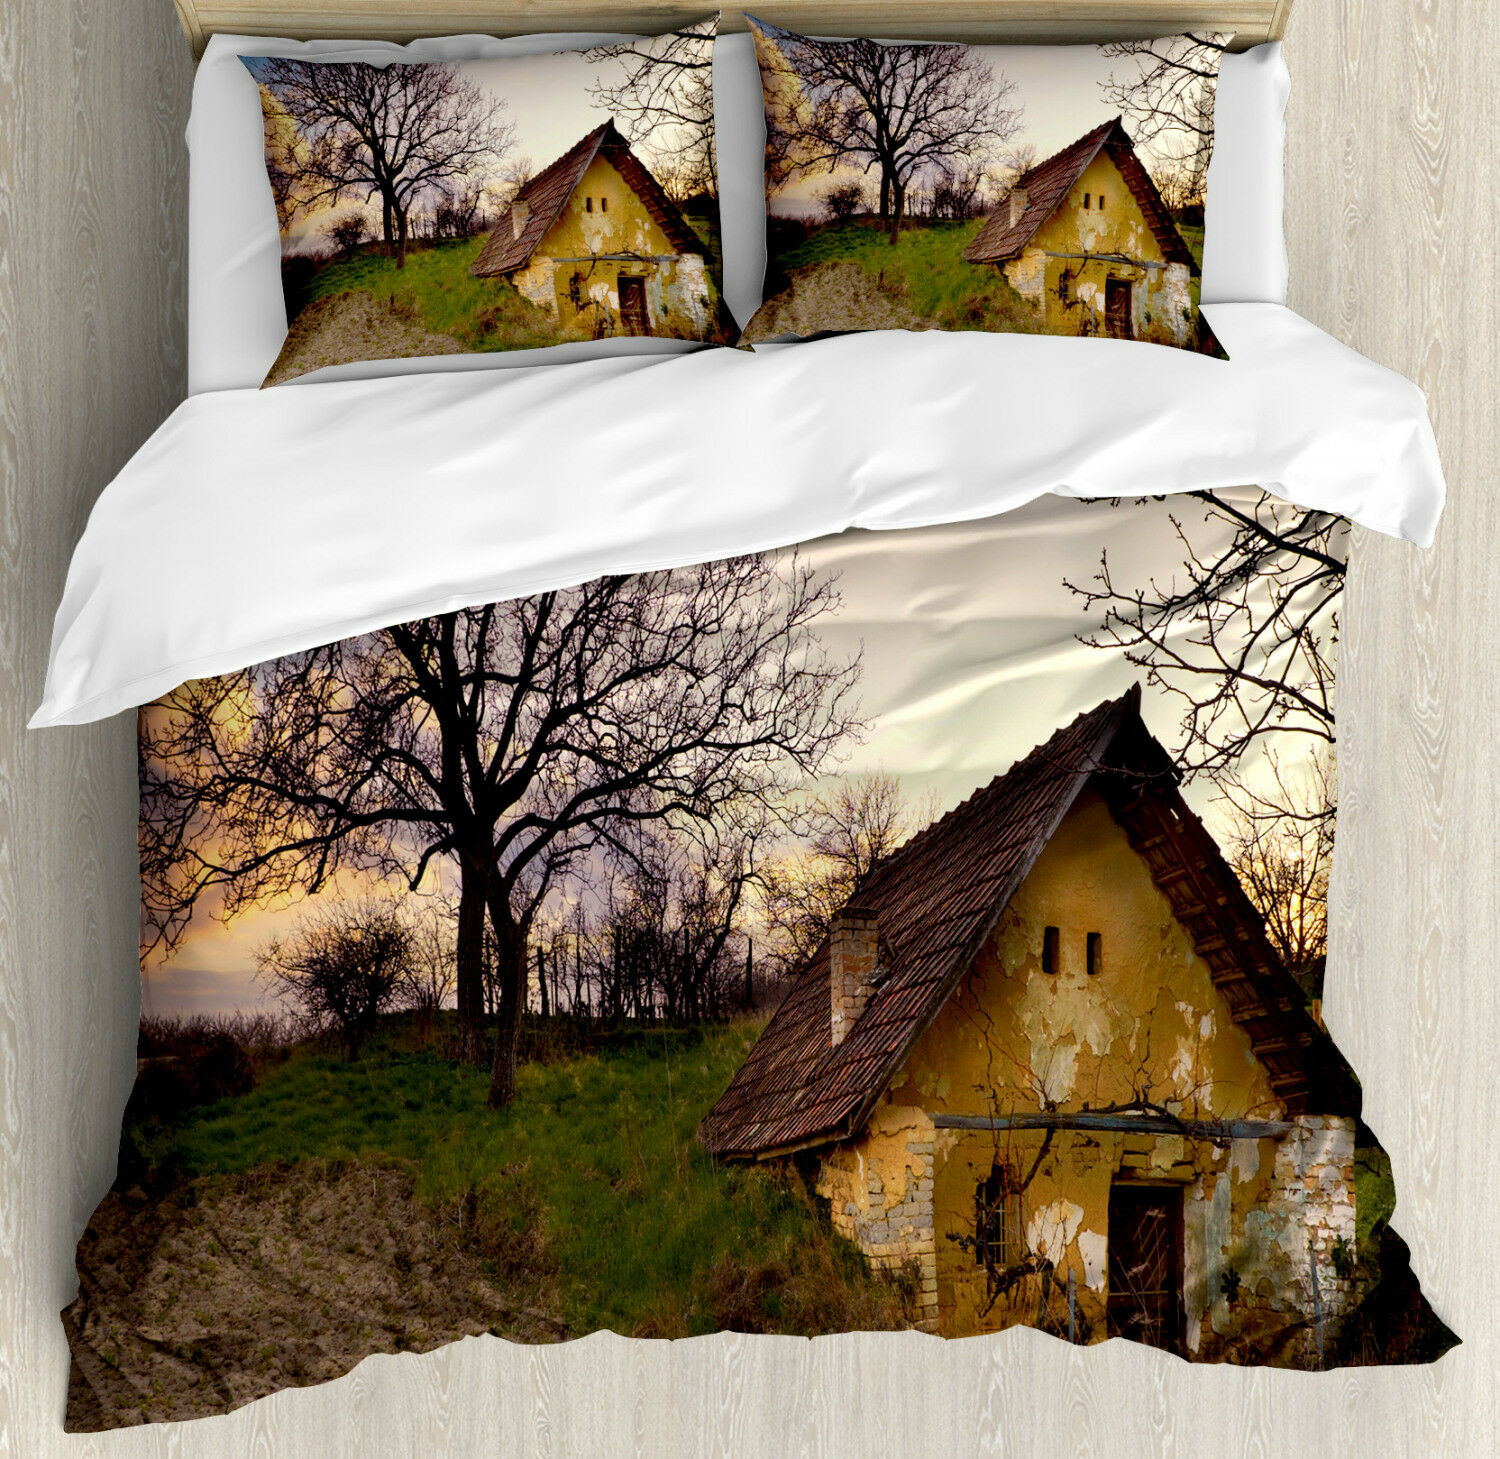 Rustic Duvet Cover Set with Pillow Shams Batterosso Stone House Print